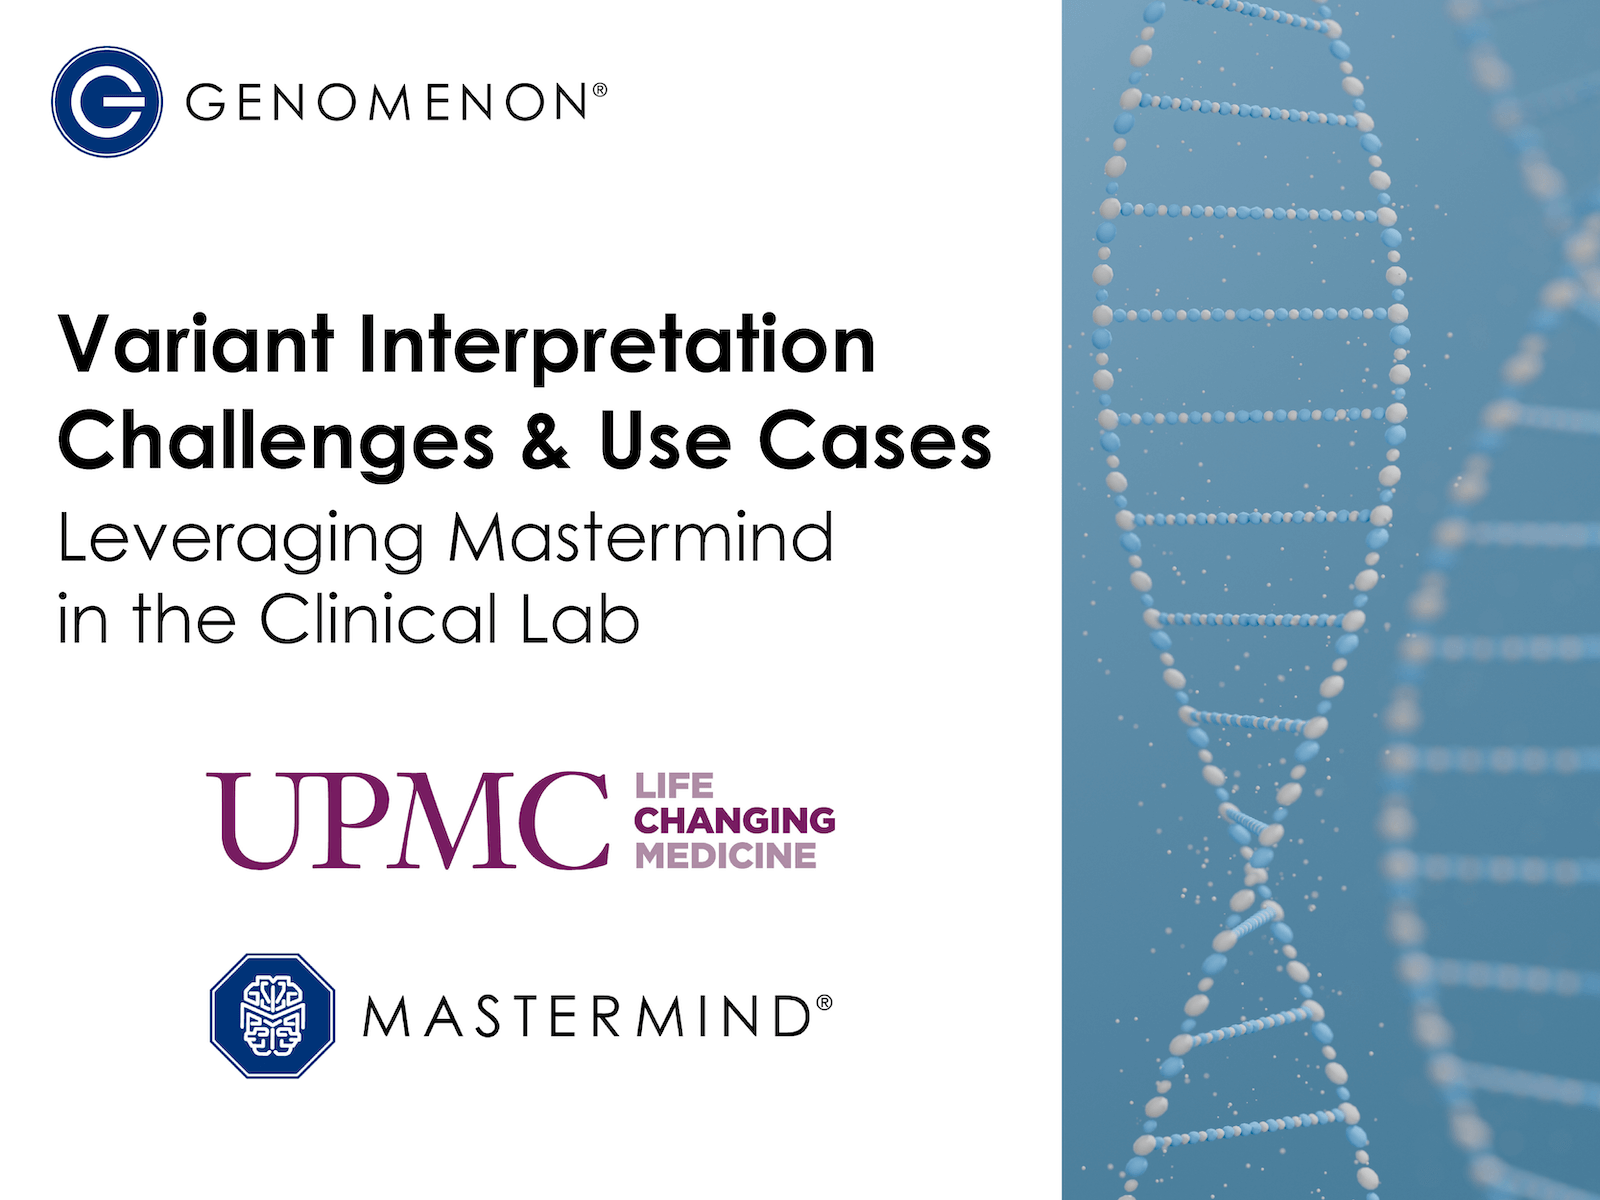 <h5>Variant Interpretation Challenges & Use Cases | Leveraging Mastermind in the Clinical Lab</b><br><h6><b>Tuesday, July 13, 2021</h6></b>